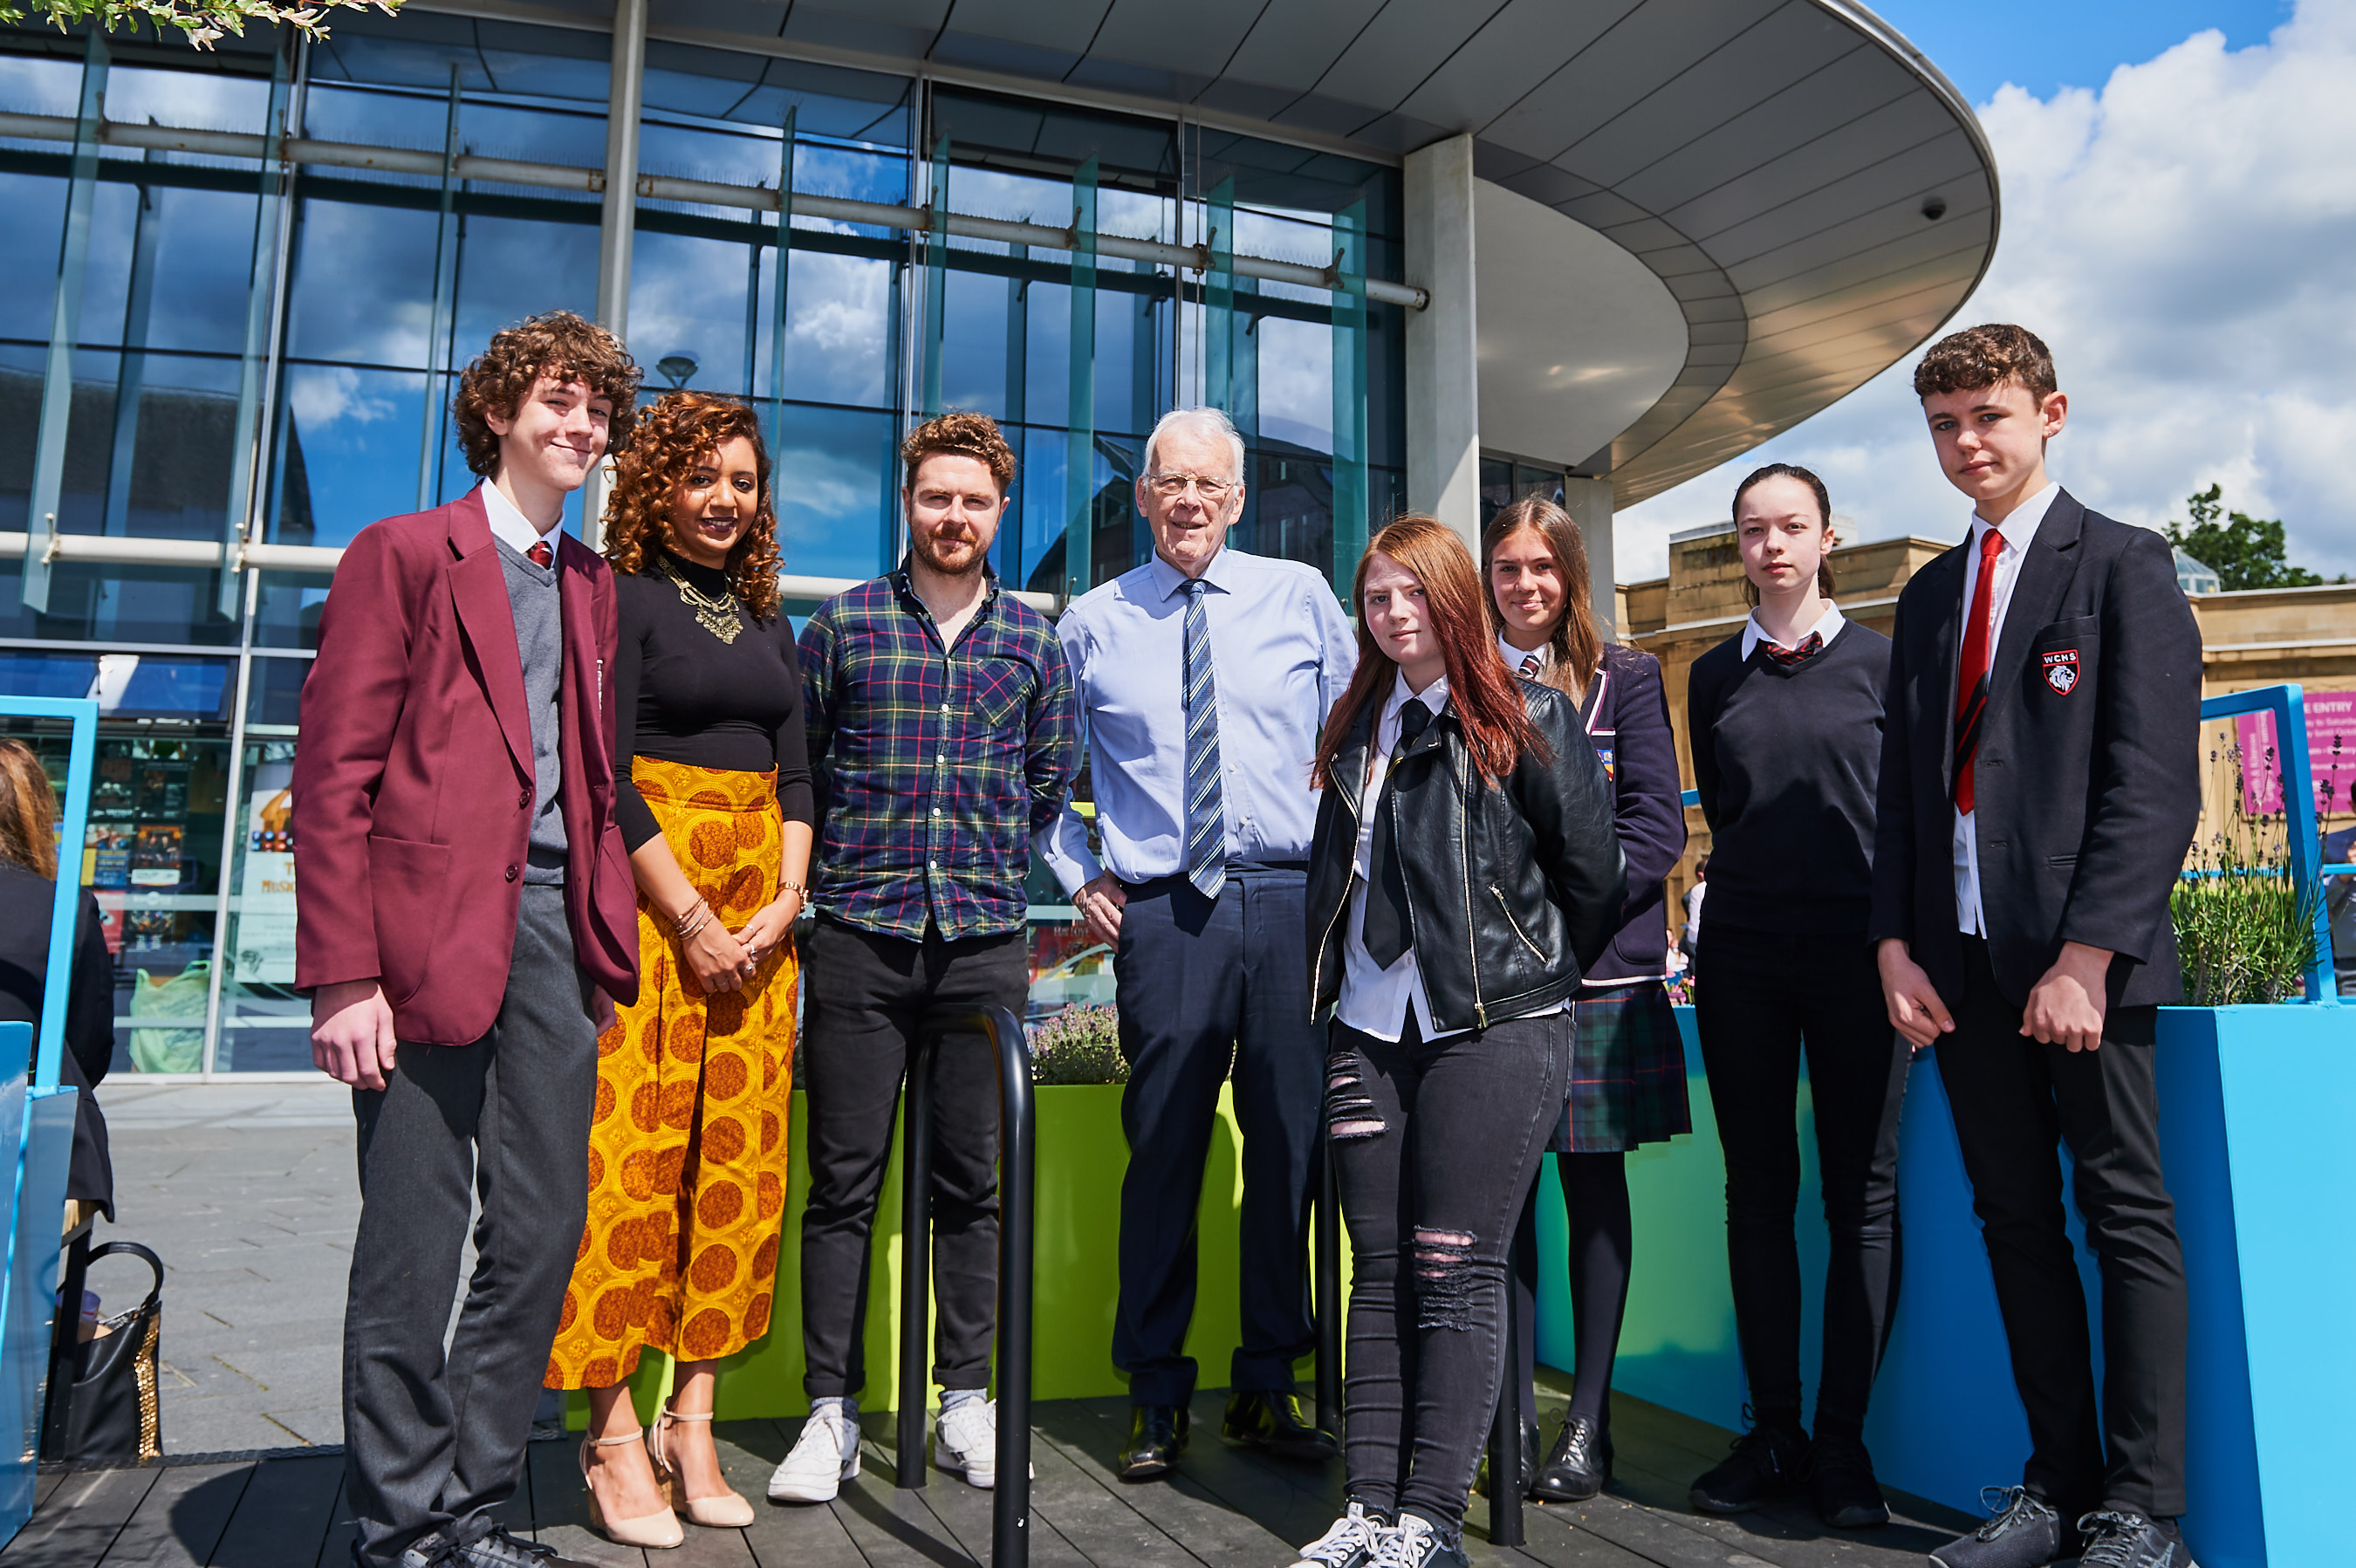 YPI 2019 Event at Perth Concert Hall.  Sir Ian Wood, centre, with main speakers Alan Mahon and Amal Azzudin with some of the school pupils from all over Scotland who attended.